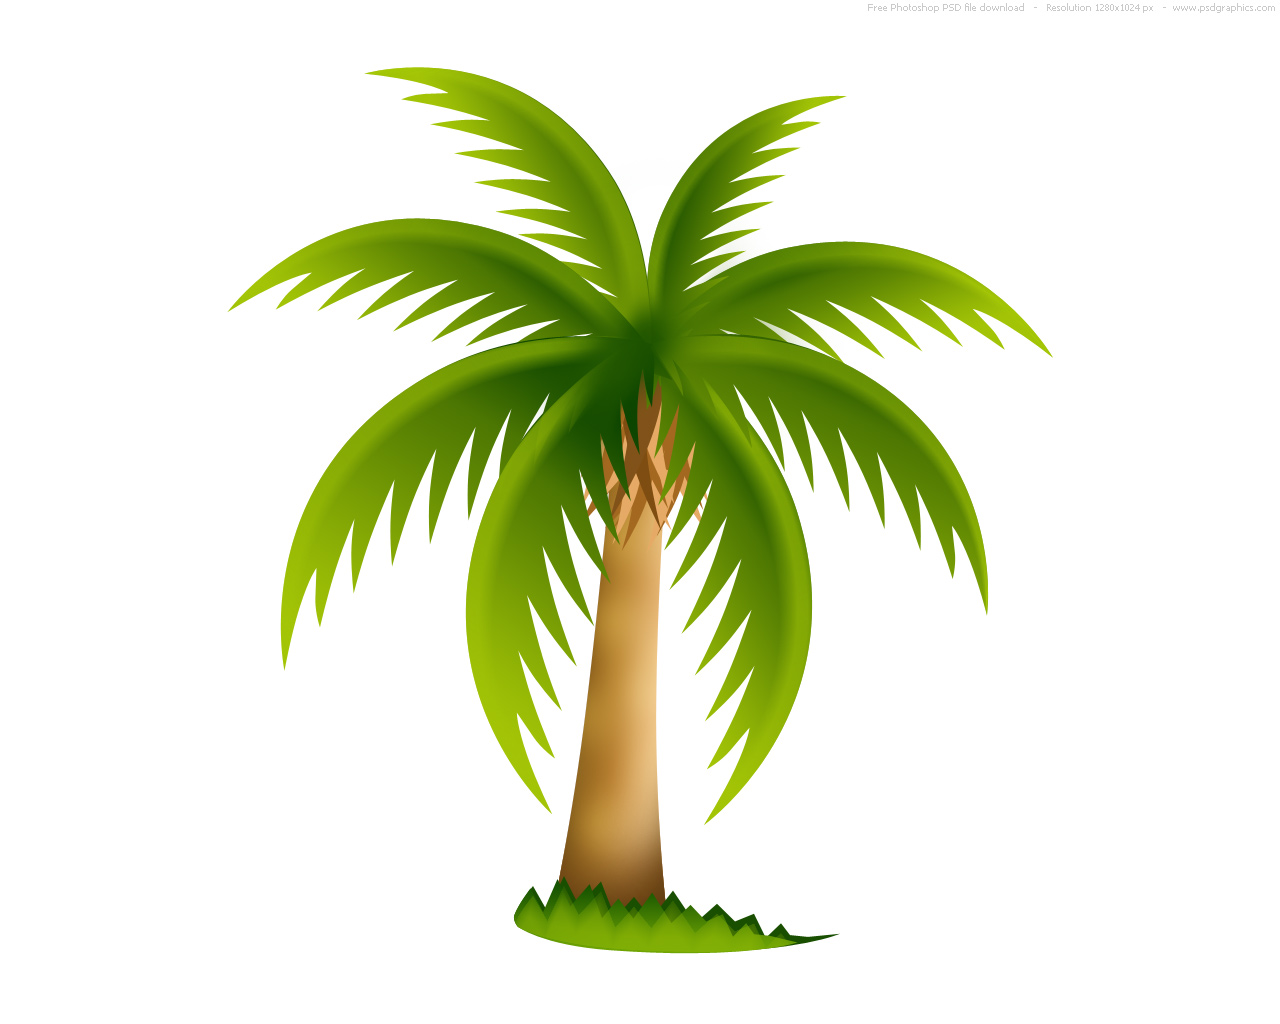 Palm Tree | Free Images at Clker.com - vector clip art online, royalty ...: www.clker.com/clipart-144759.html